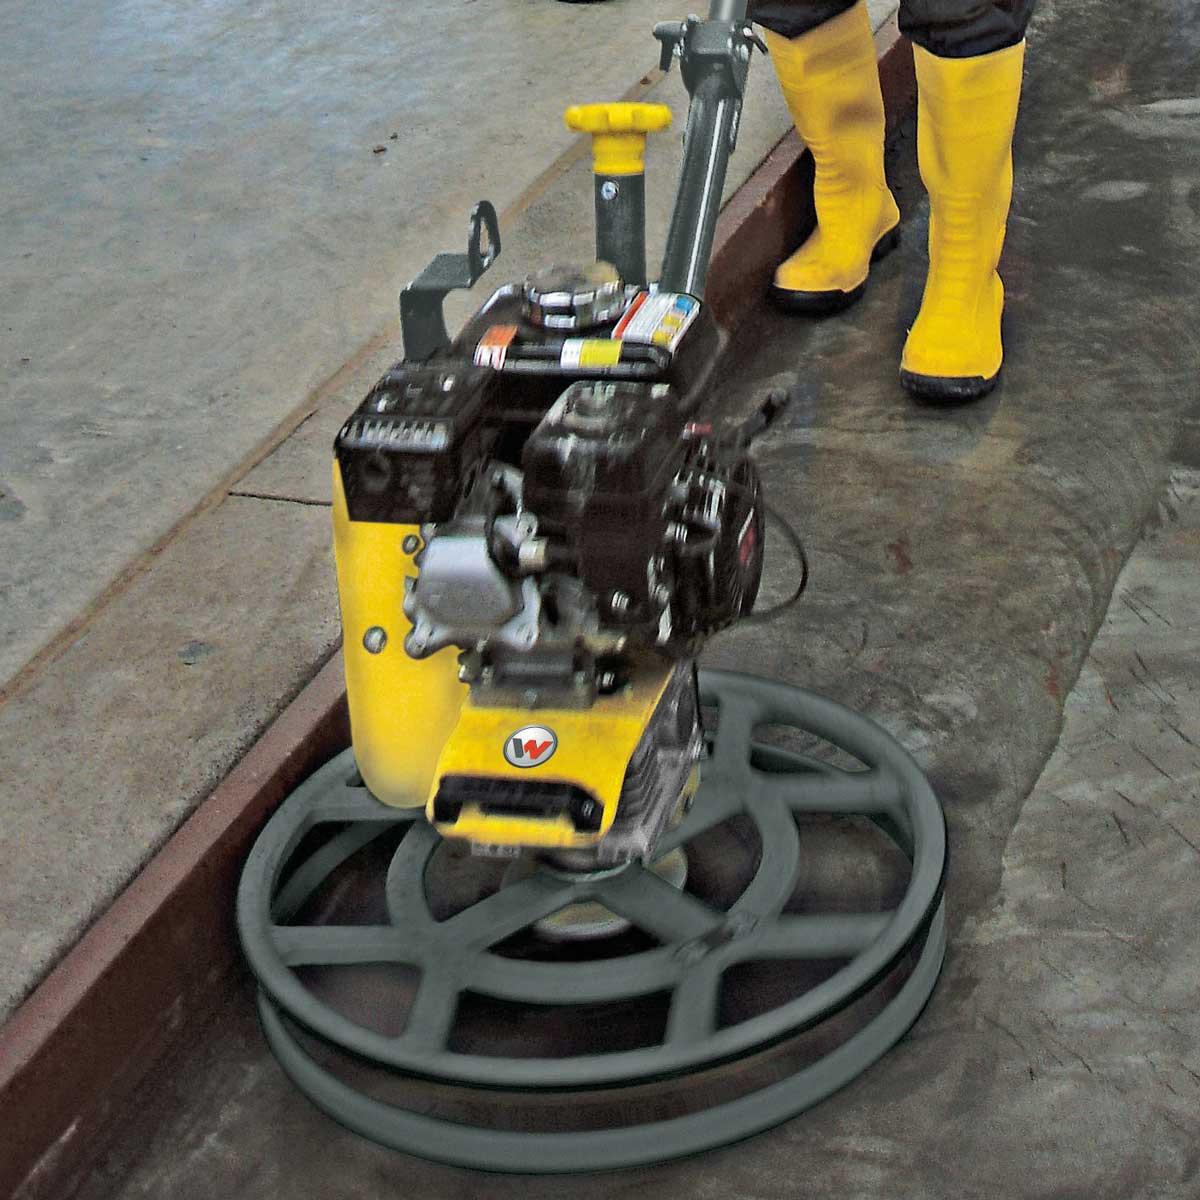 Wacker Neuson power trowel